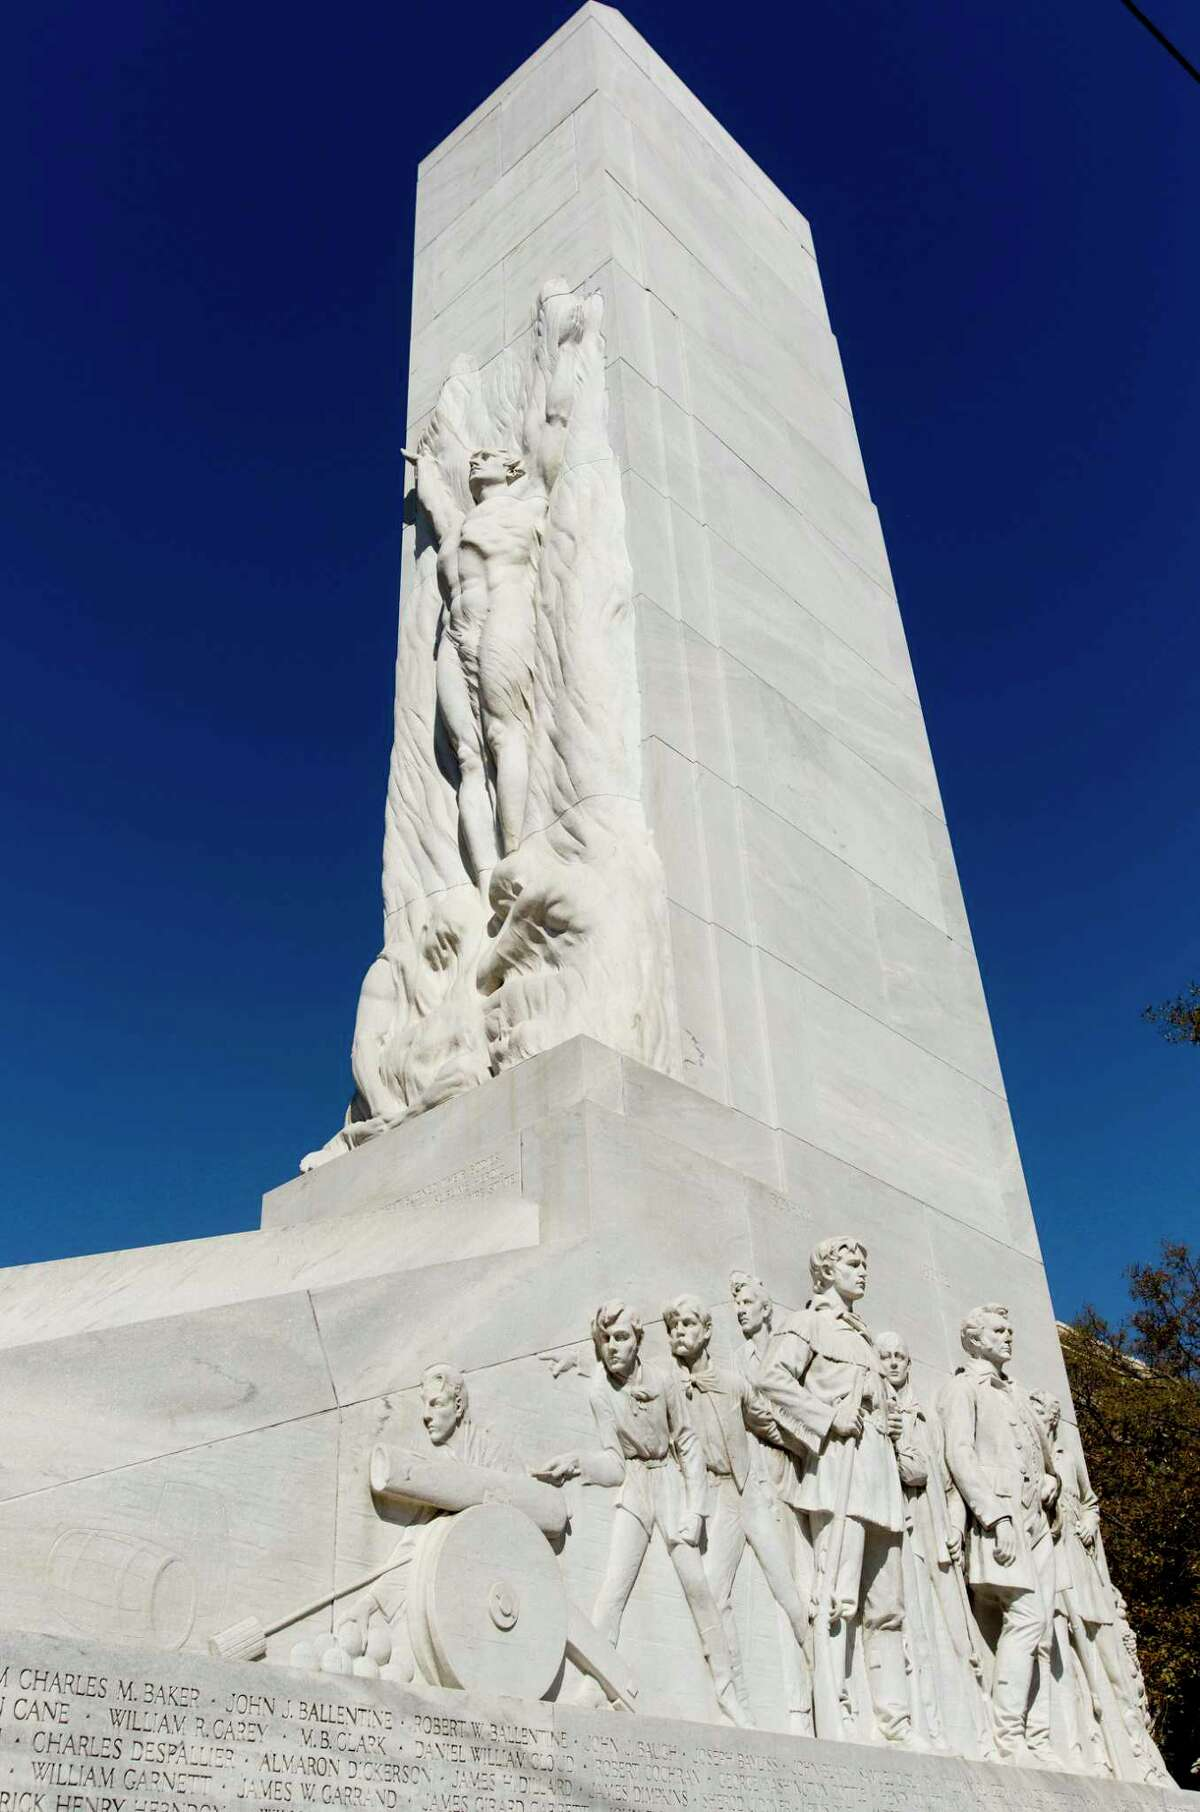 The Texas Historical Commission is considering a historic buildings and structures permit for work that includes repair, relocation and restoration of the Cenotaph, a 58-foot-tall marble monument to nearly 200 fallen Alamo defenders killed or executed in the 1836 battle for Texas independence.